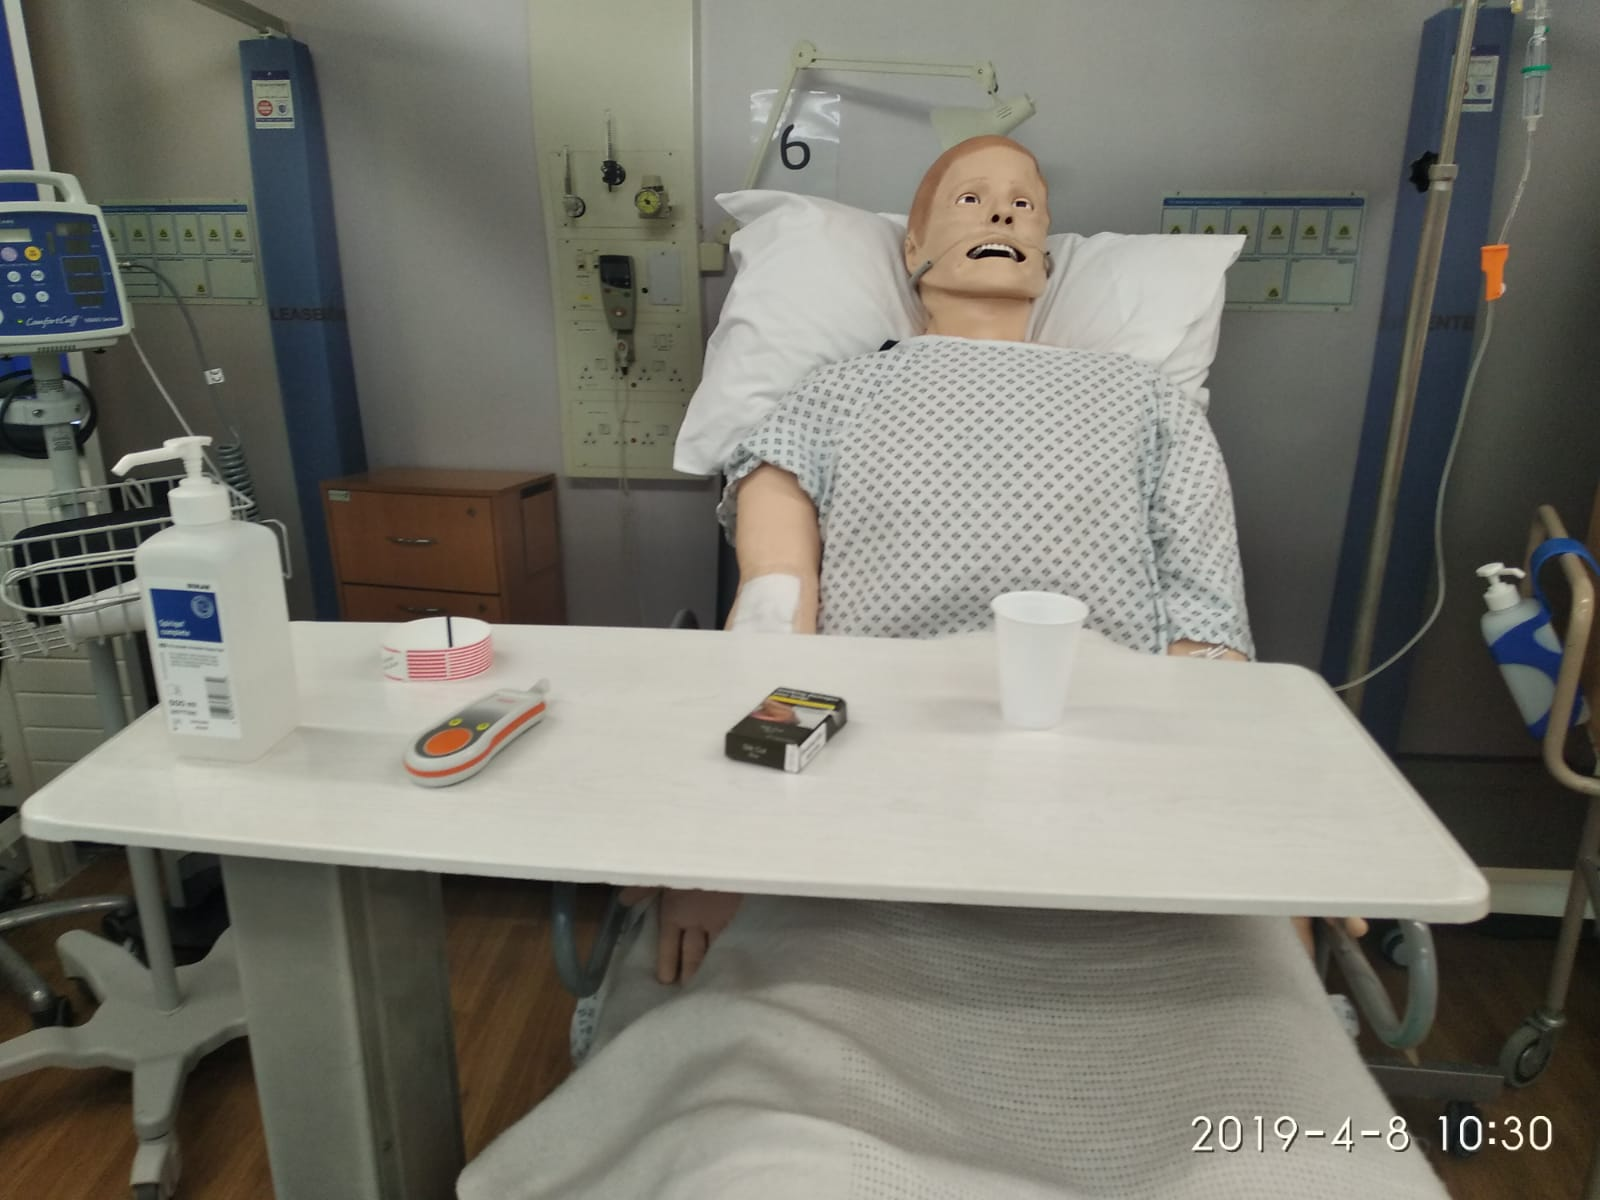 Manikin used in NMC OSCE